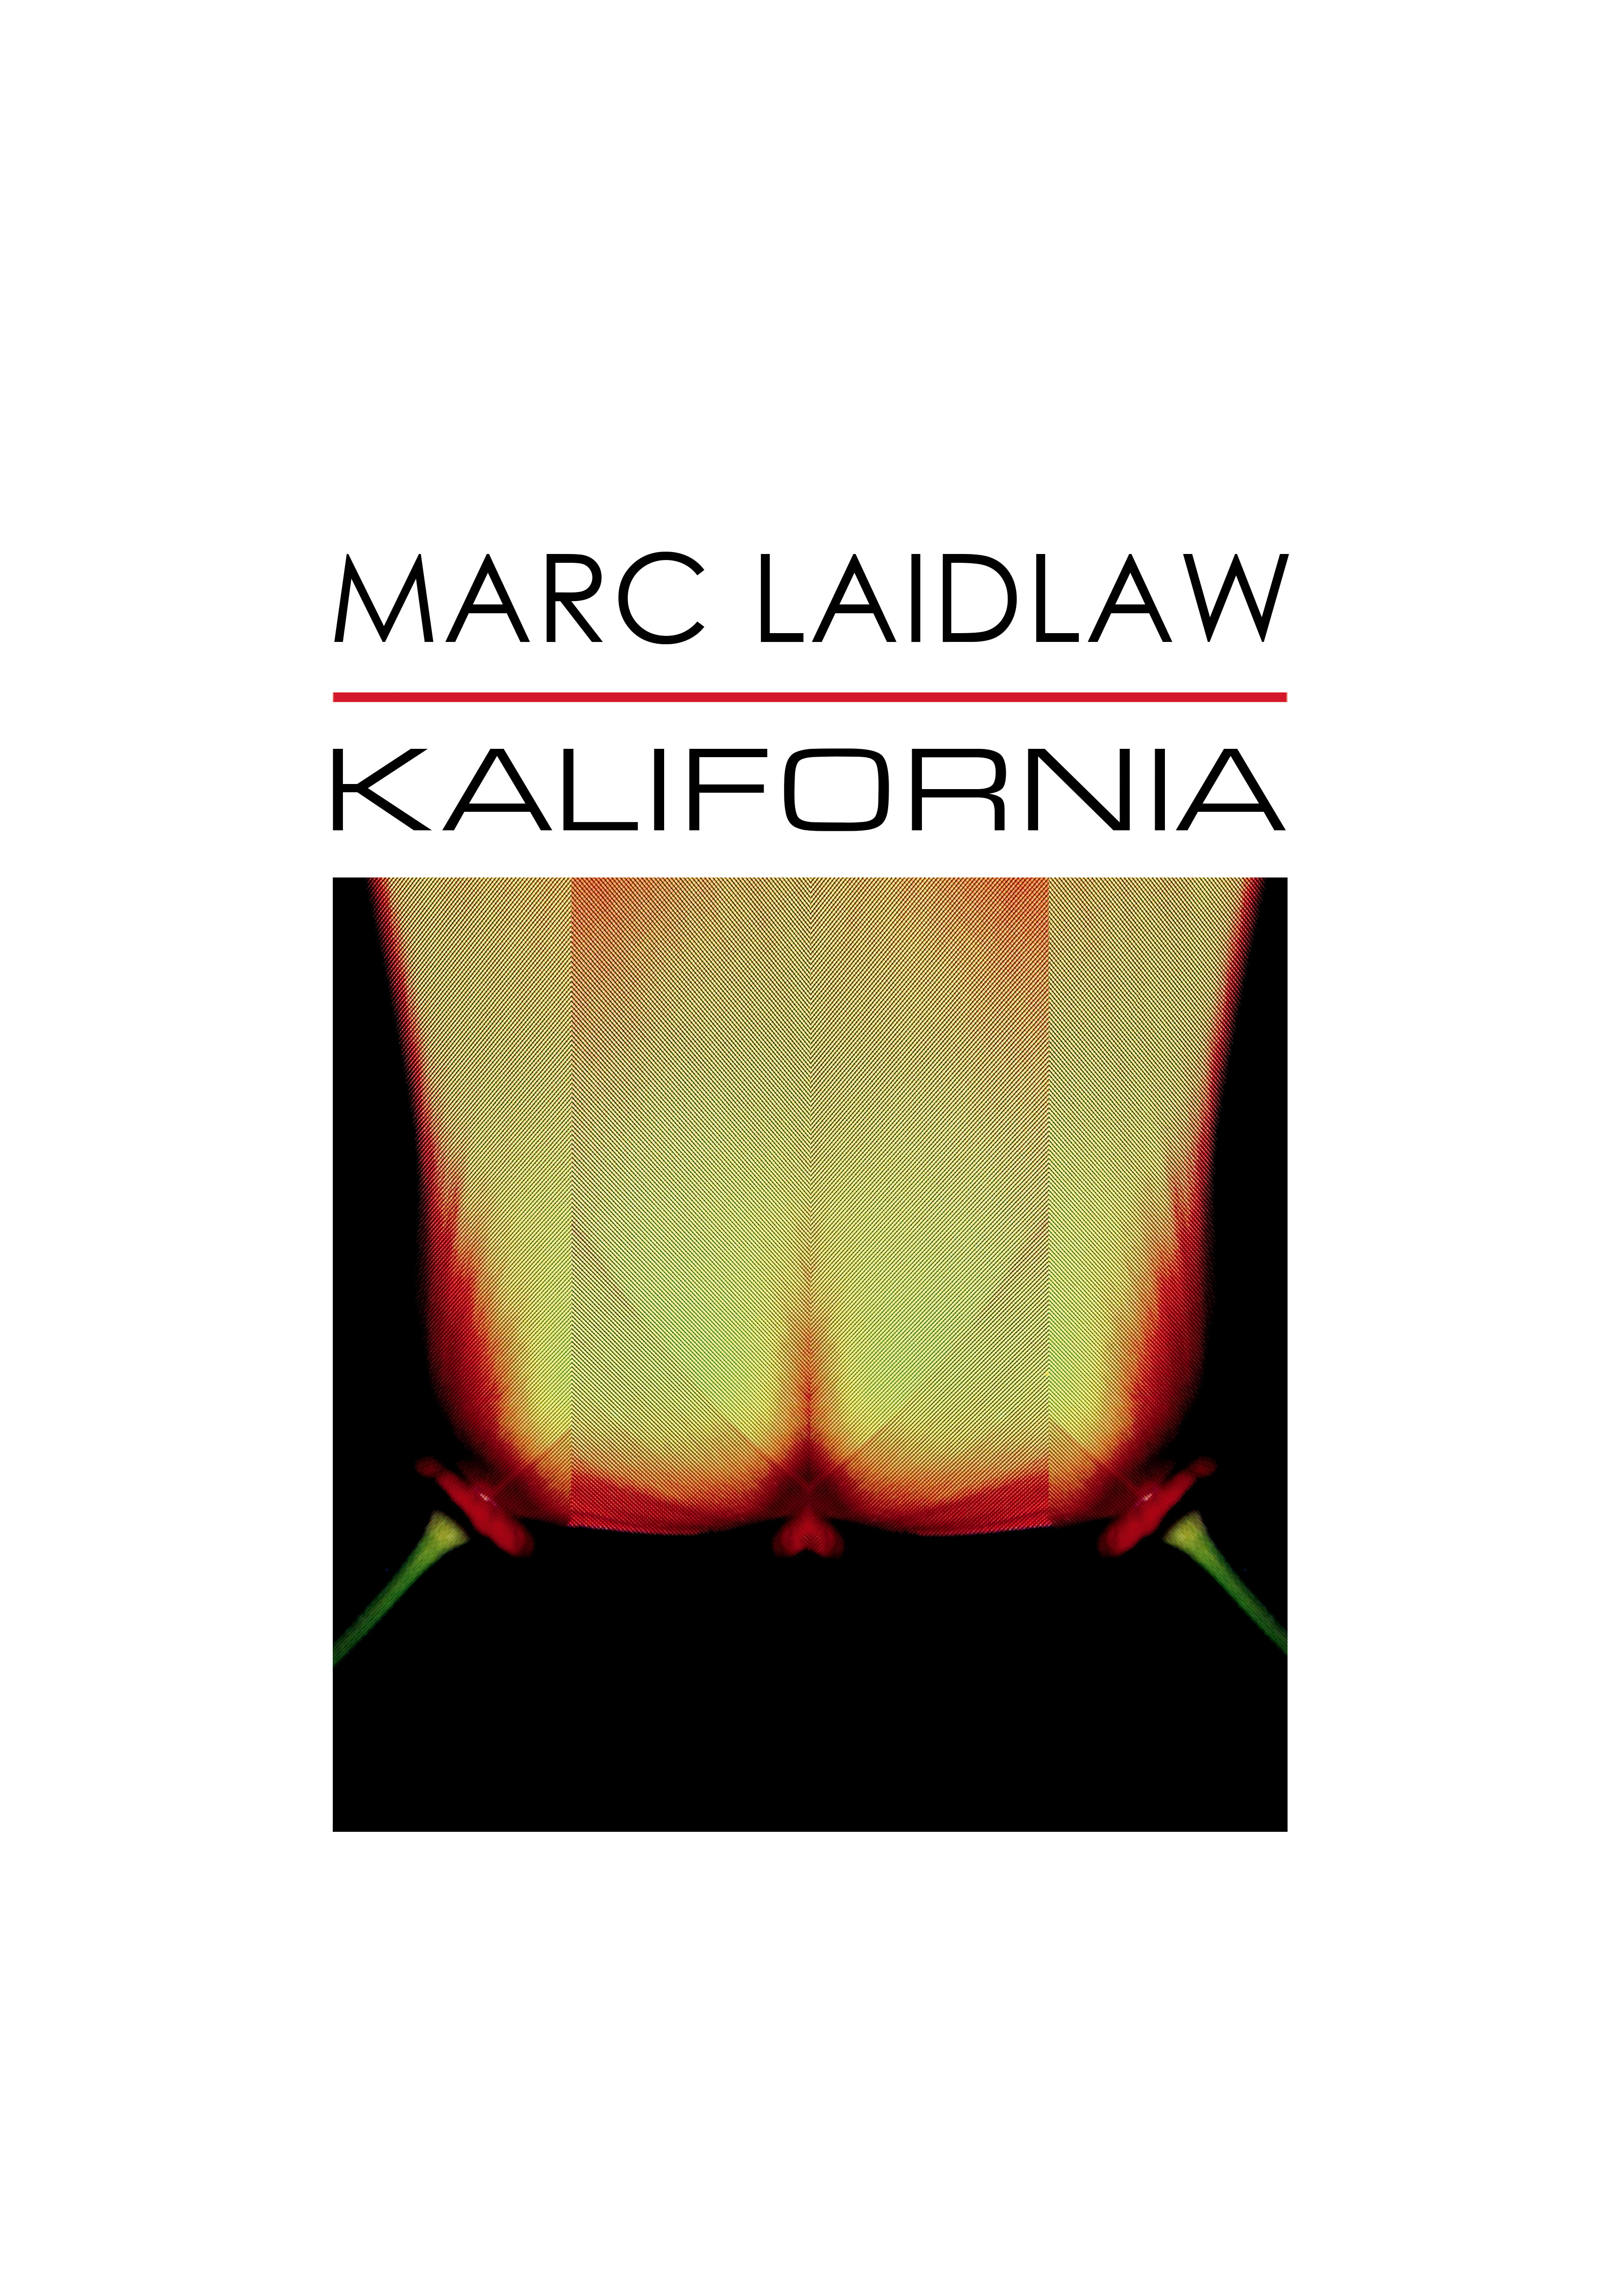 marc_laidlaw_cover_kalifornia_06_29_2016(1)